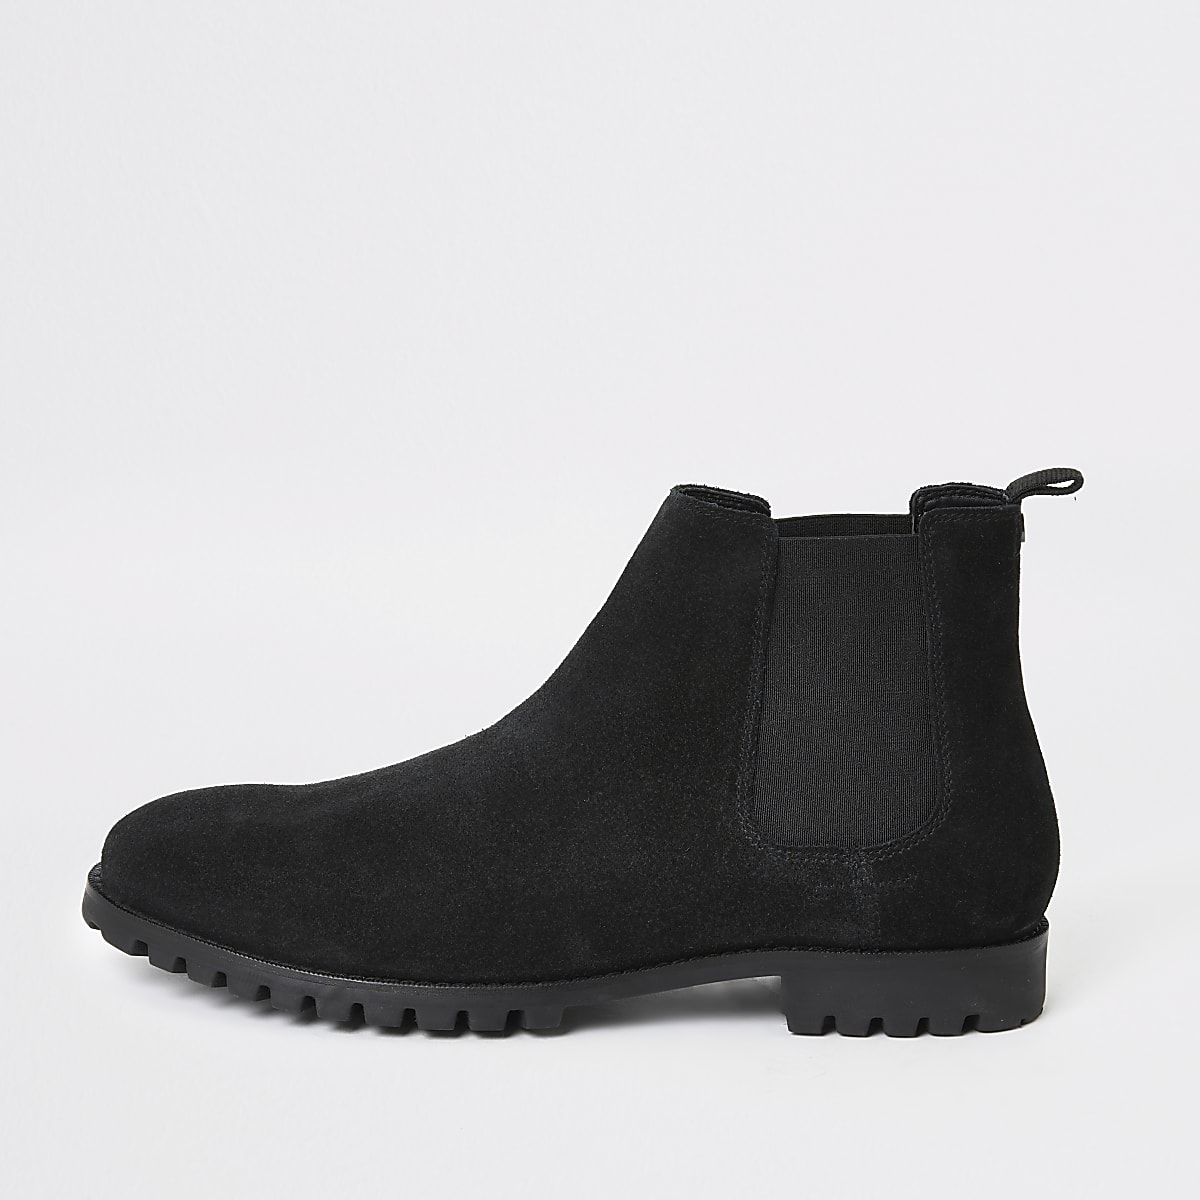 Bottines chelsea en daim noir, coupe large